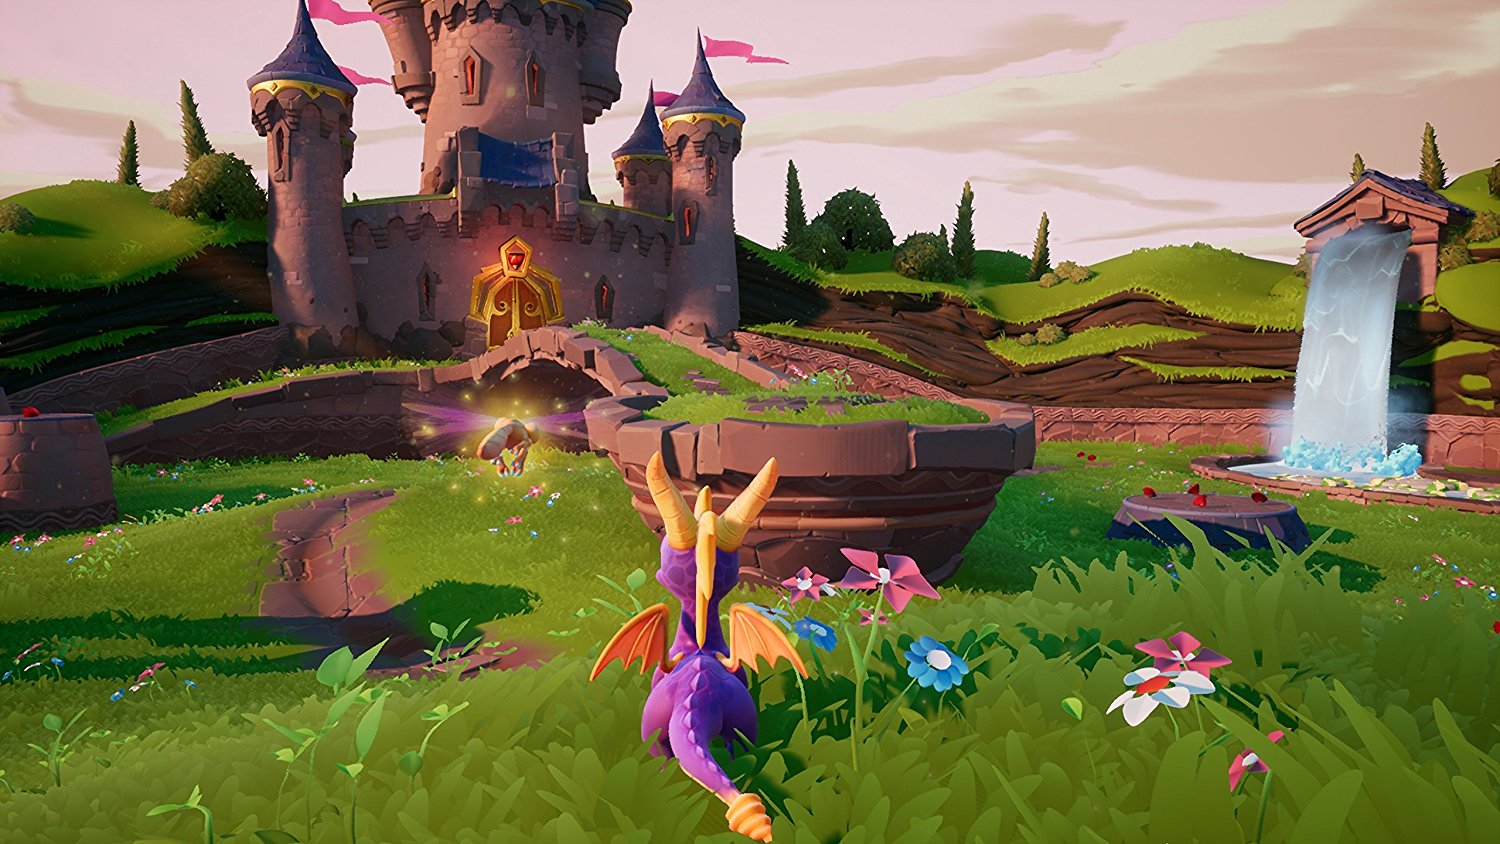 The remaster of Spyro promises so much to those who loved the original games. Can it live up to it's sky high expectations?